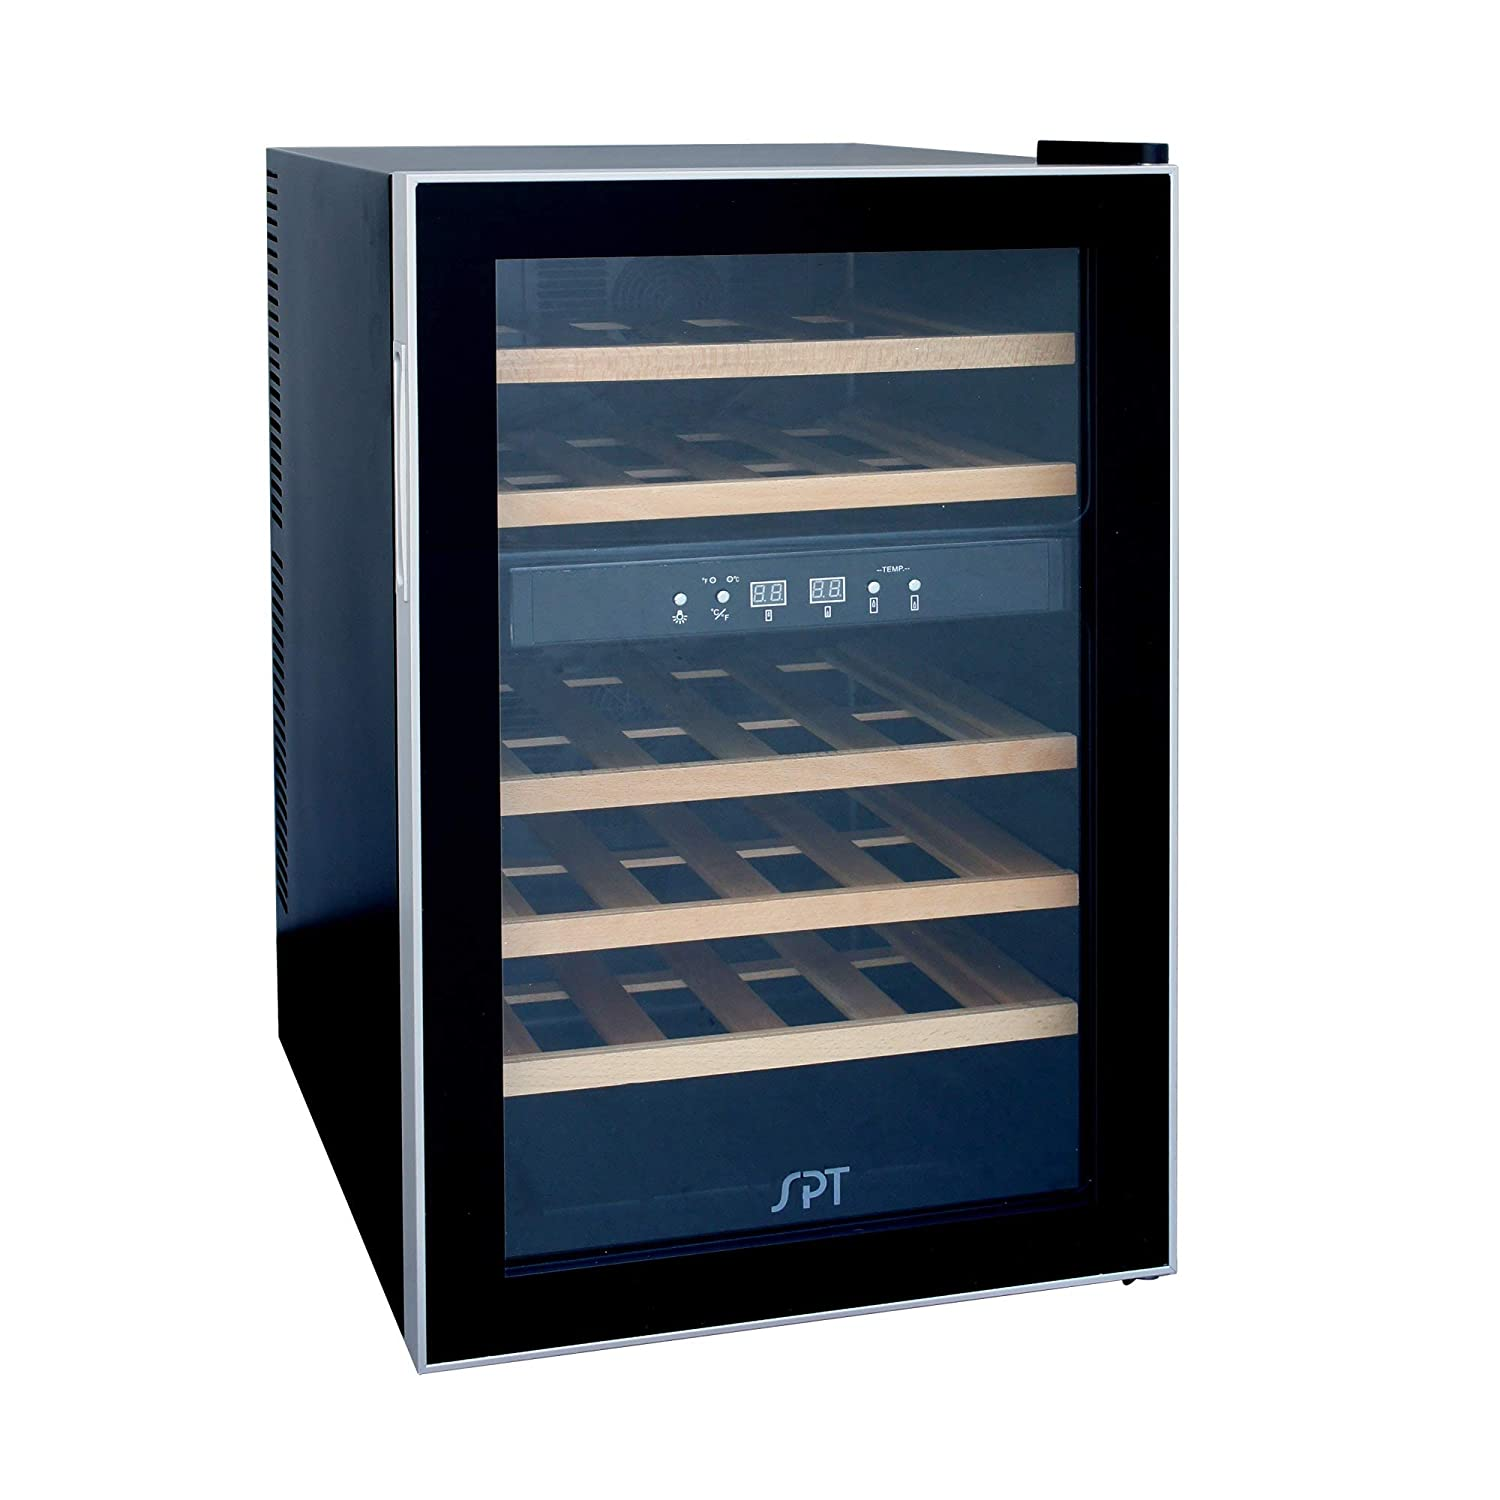 SPT WC-2463W Dual-Zone Thermo-Electric Wine Cooler with Wooden Shelves (24 Bottles)